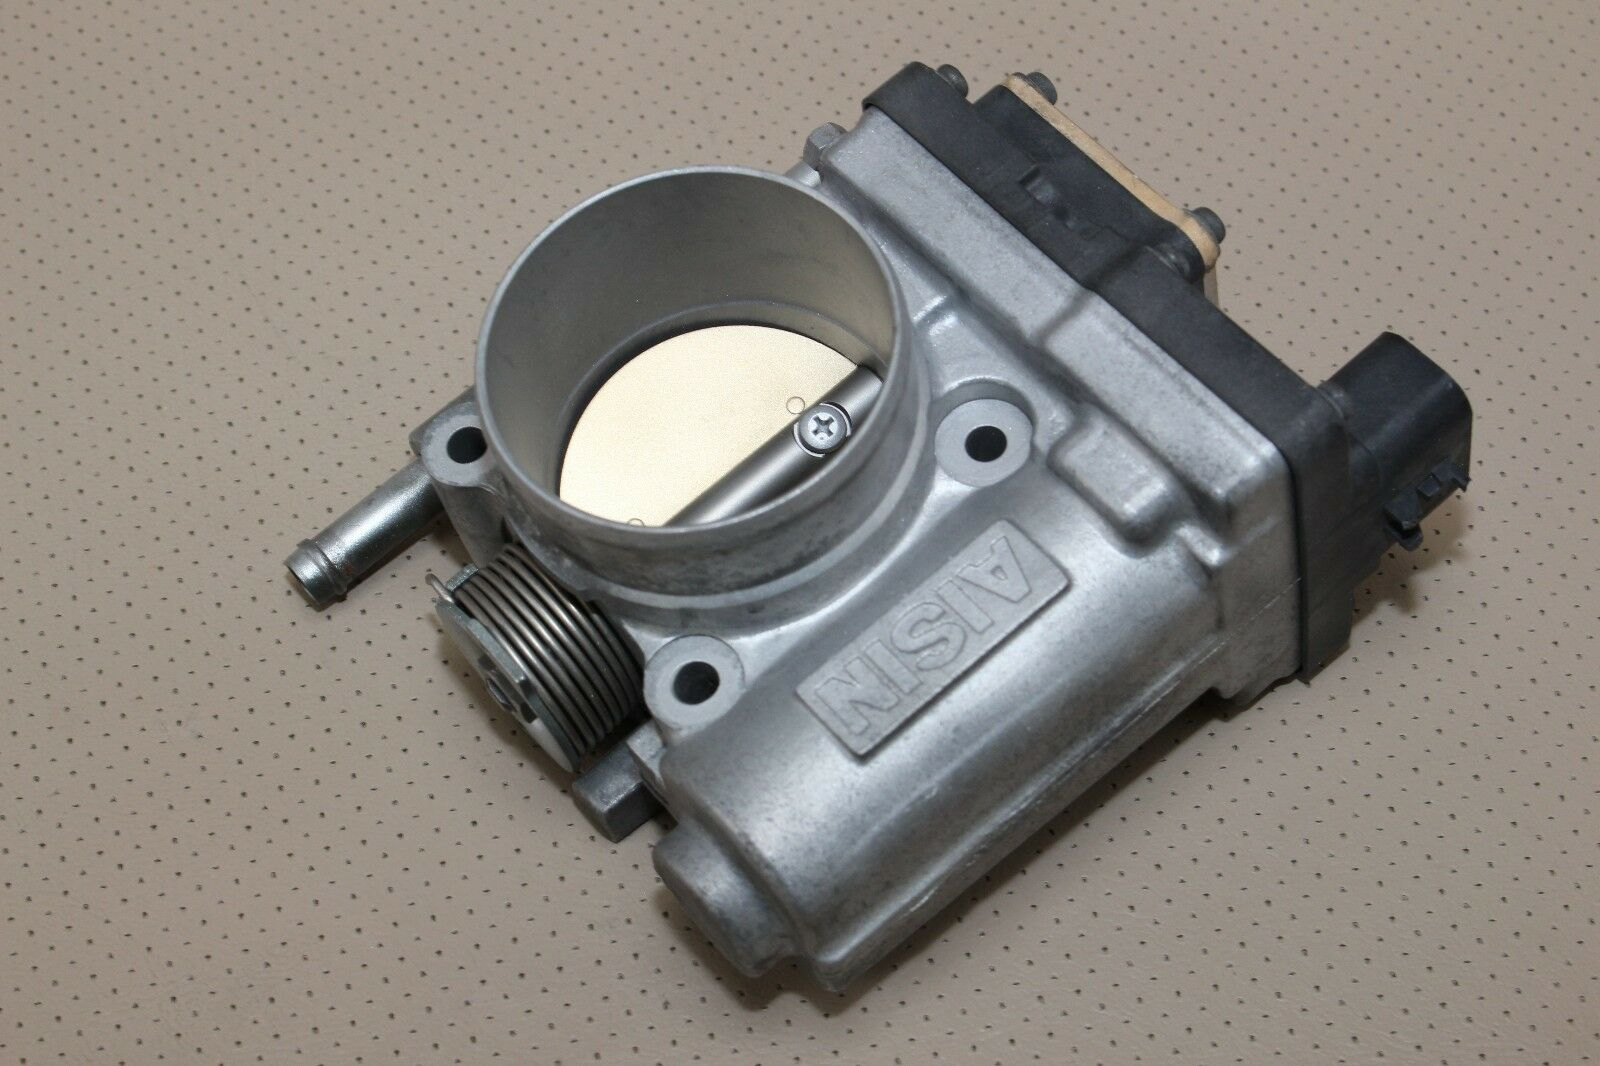 00 03 Isuzu Rodeo Passport Trooper 35l Throttle Body Electronic 1999 Amigo Water Pump Aisin Non Cable 1 Of 5only 2 Available See More